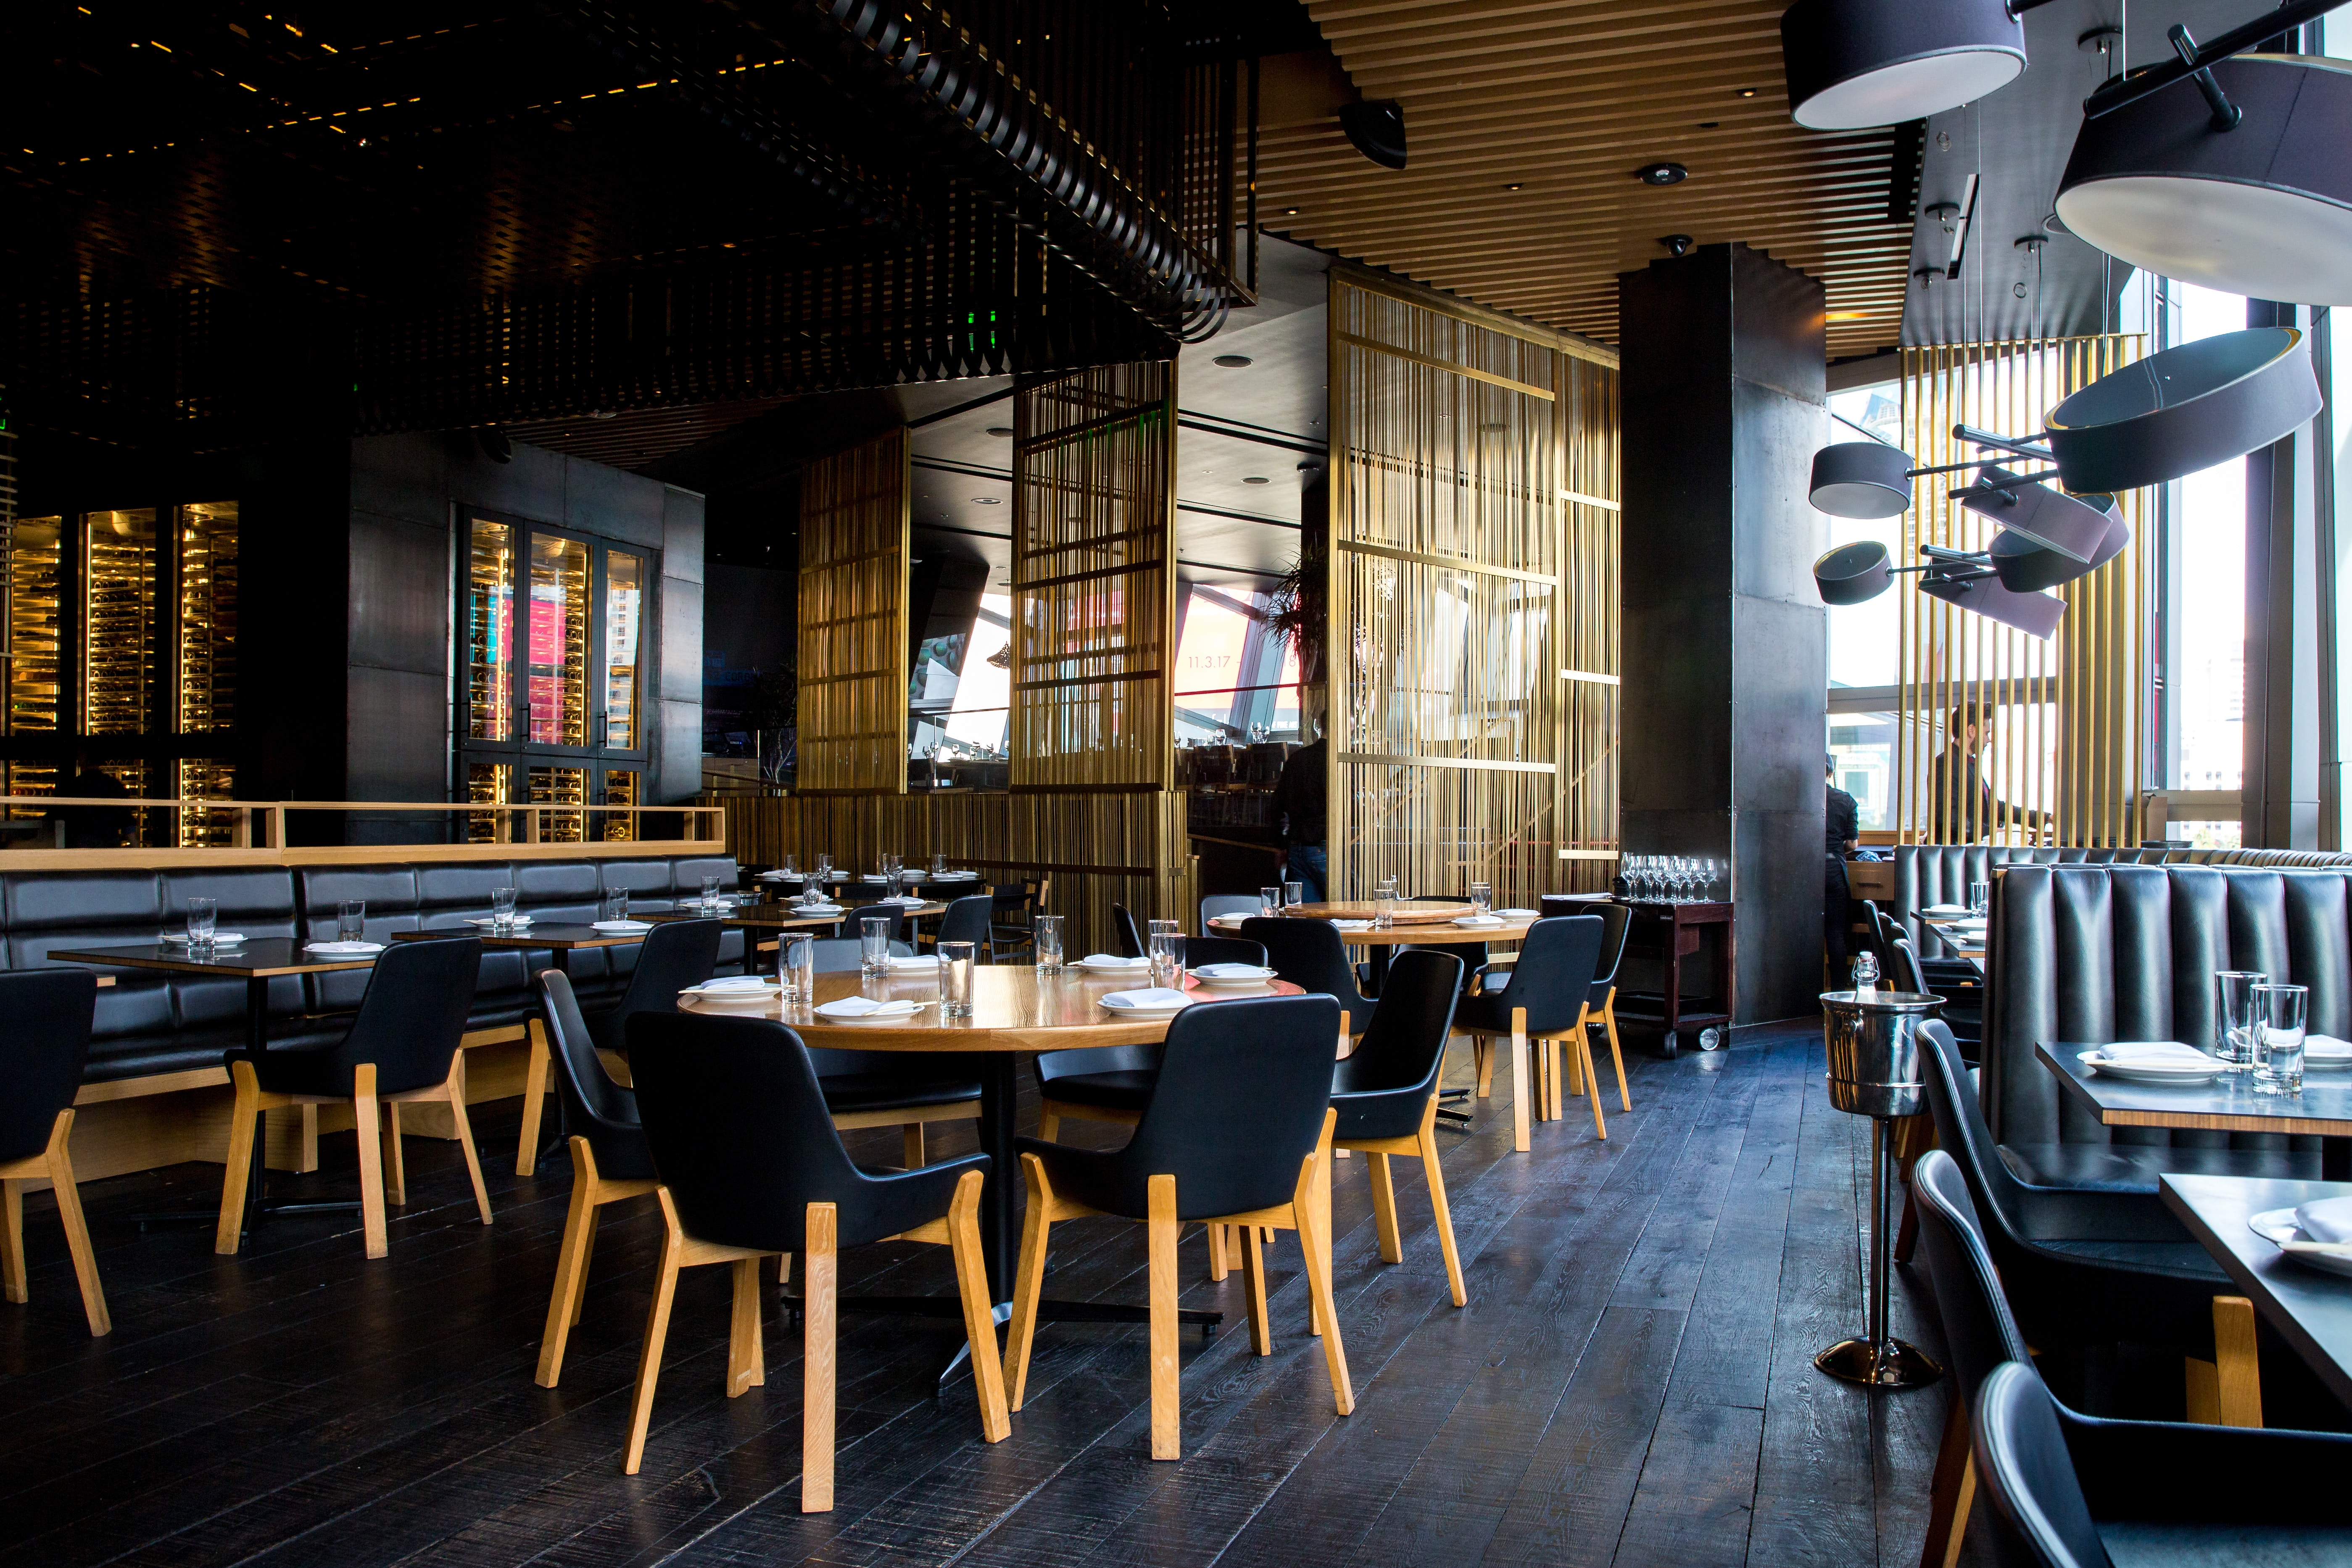 The Importance of Proper Blinds in Restaurants